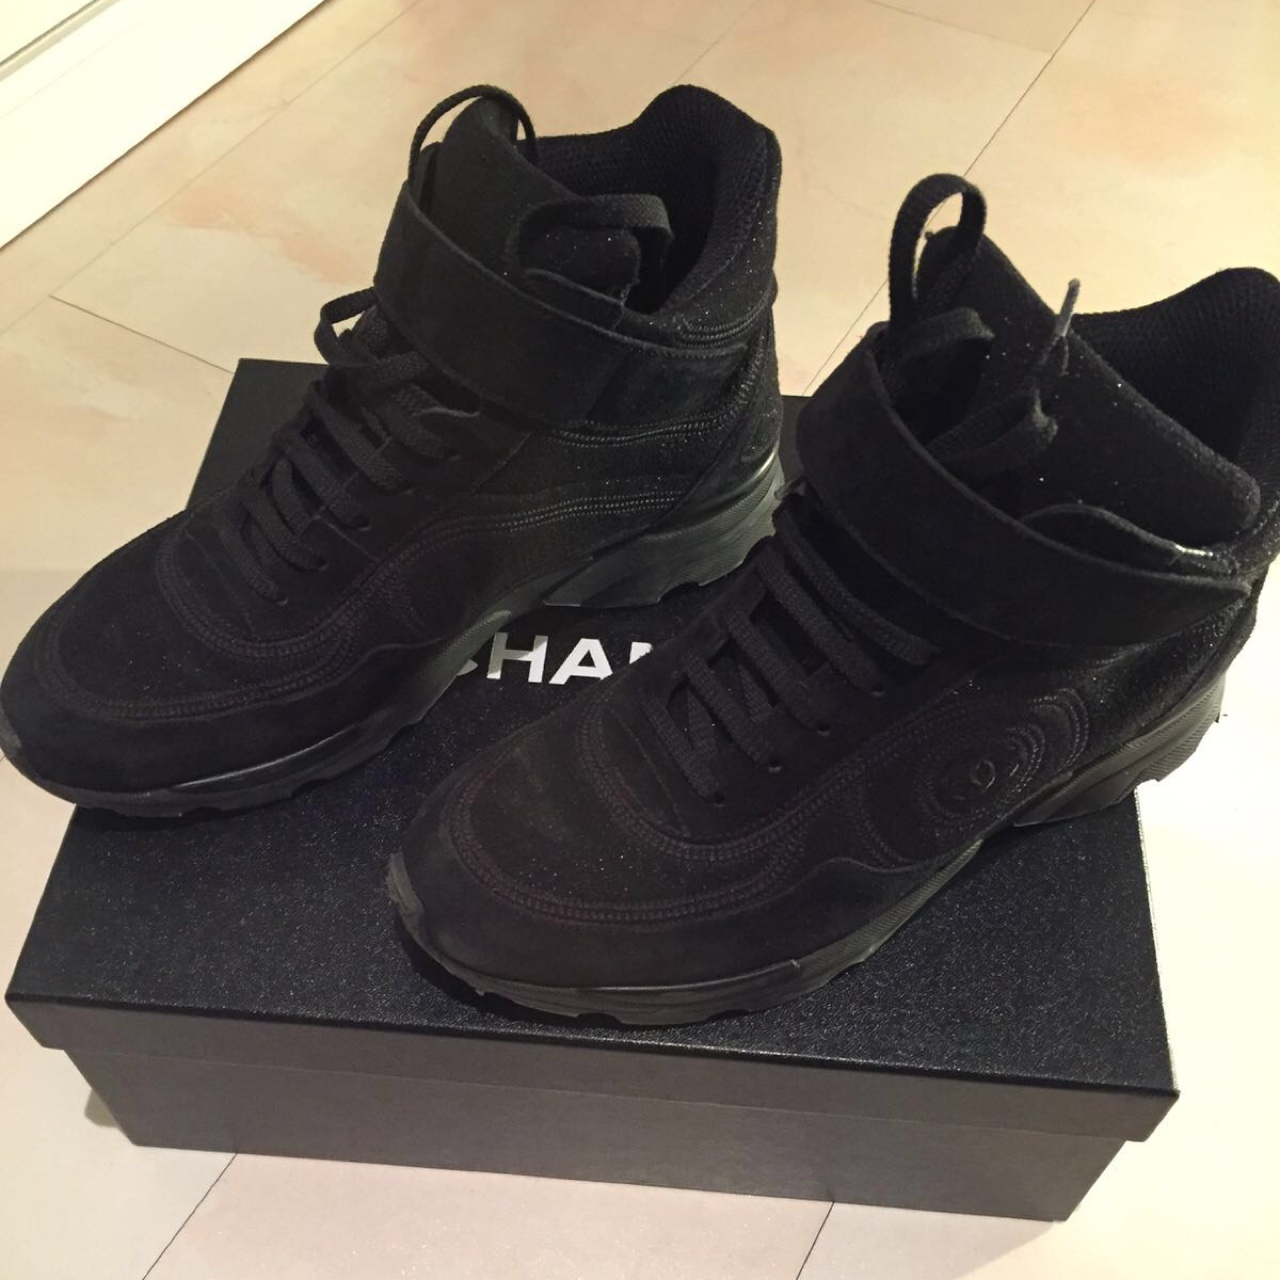 Chanel Black High-Top sneakers size 37